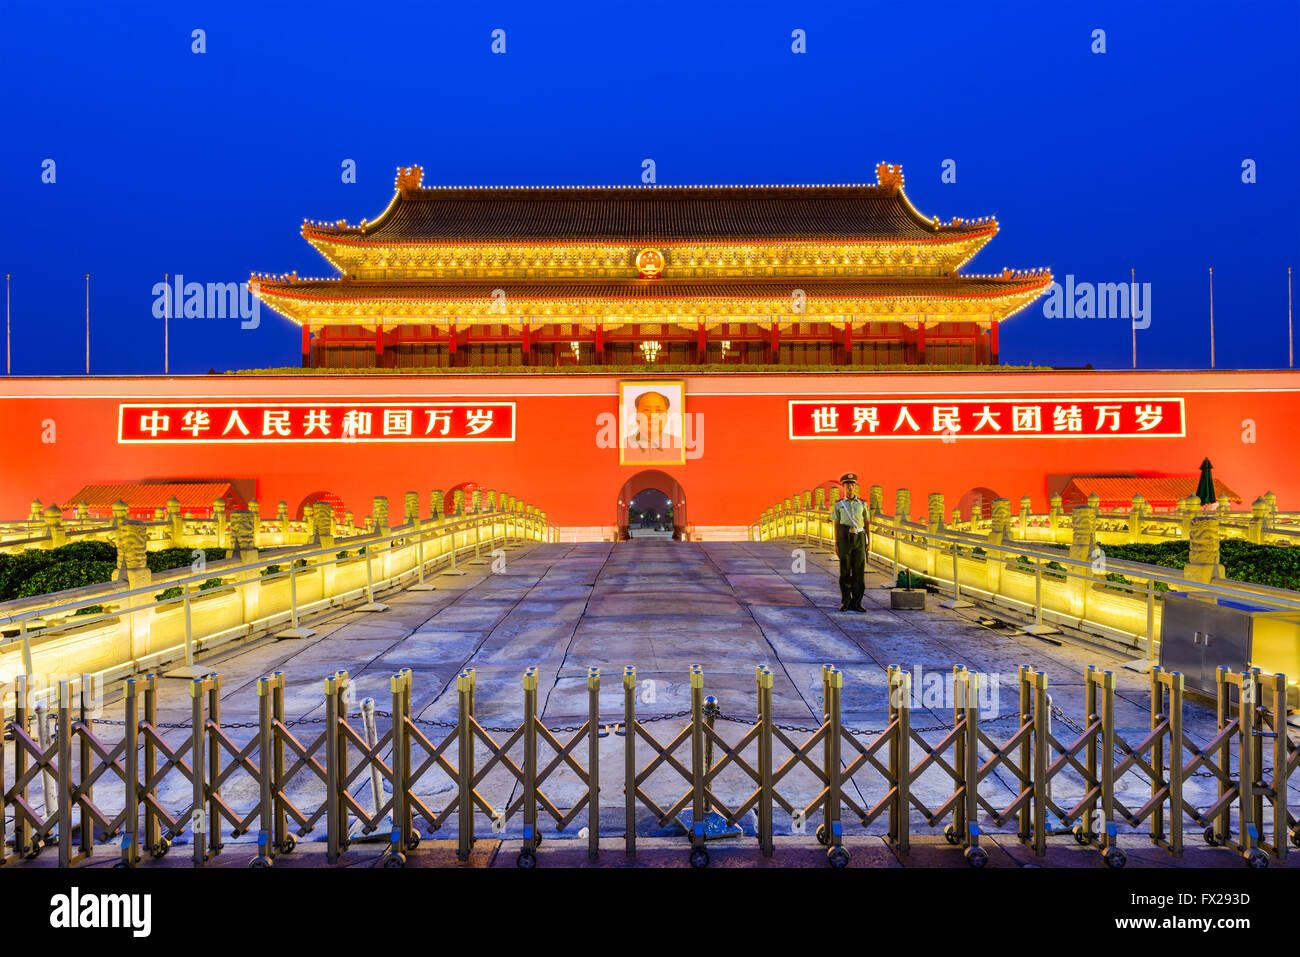 BEIJING, CHINA - JUNE 27, 2014: A soldier guards The Tiananmen Gate at Tiananmen Square. - Stock Image